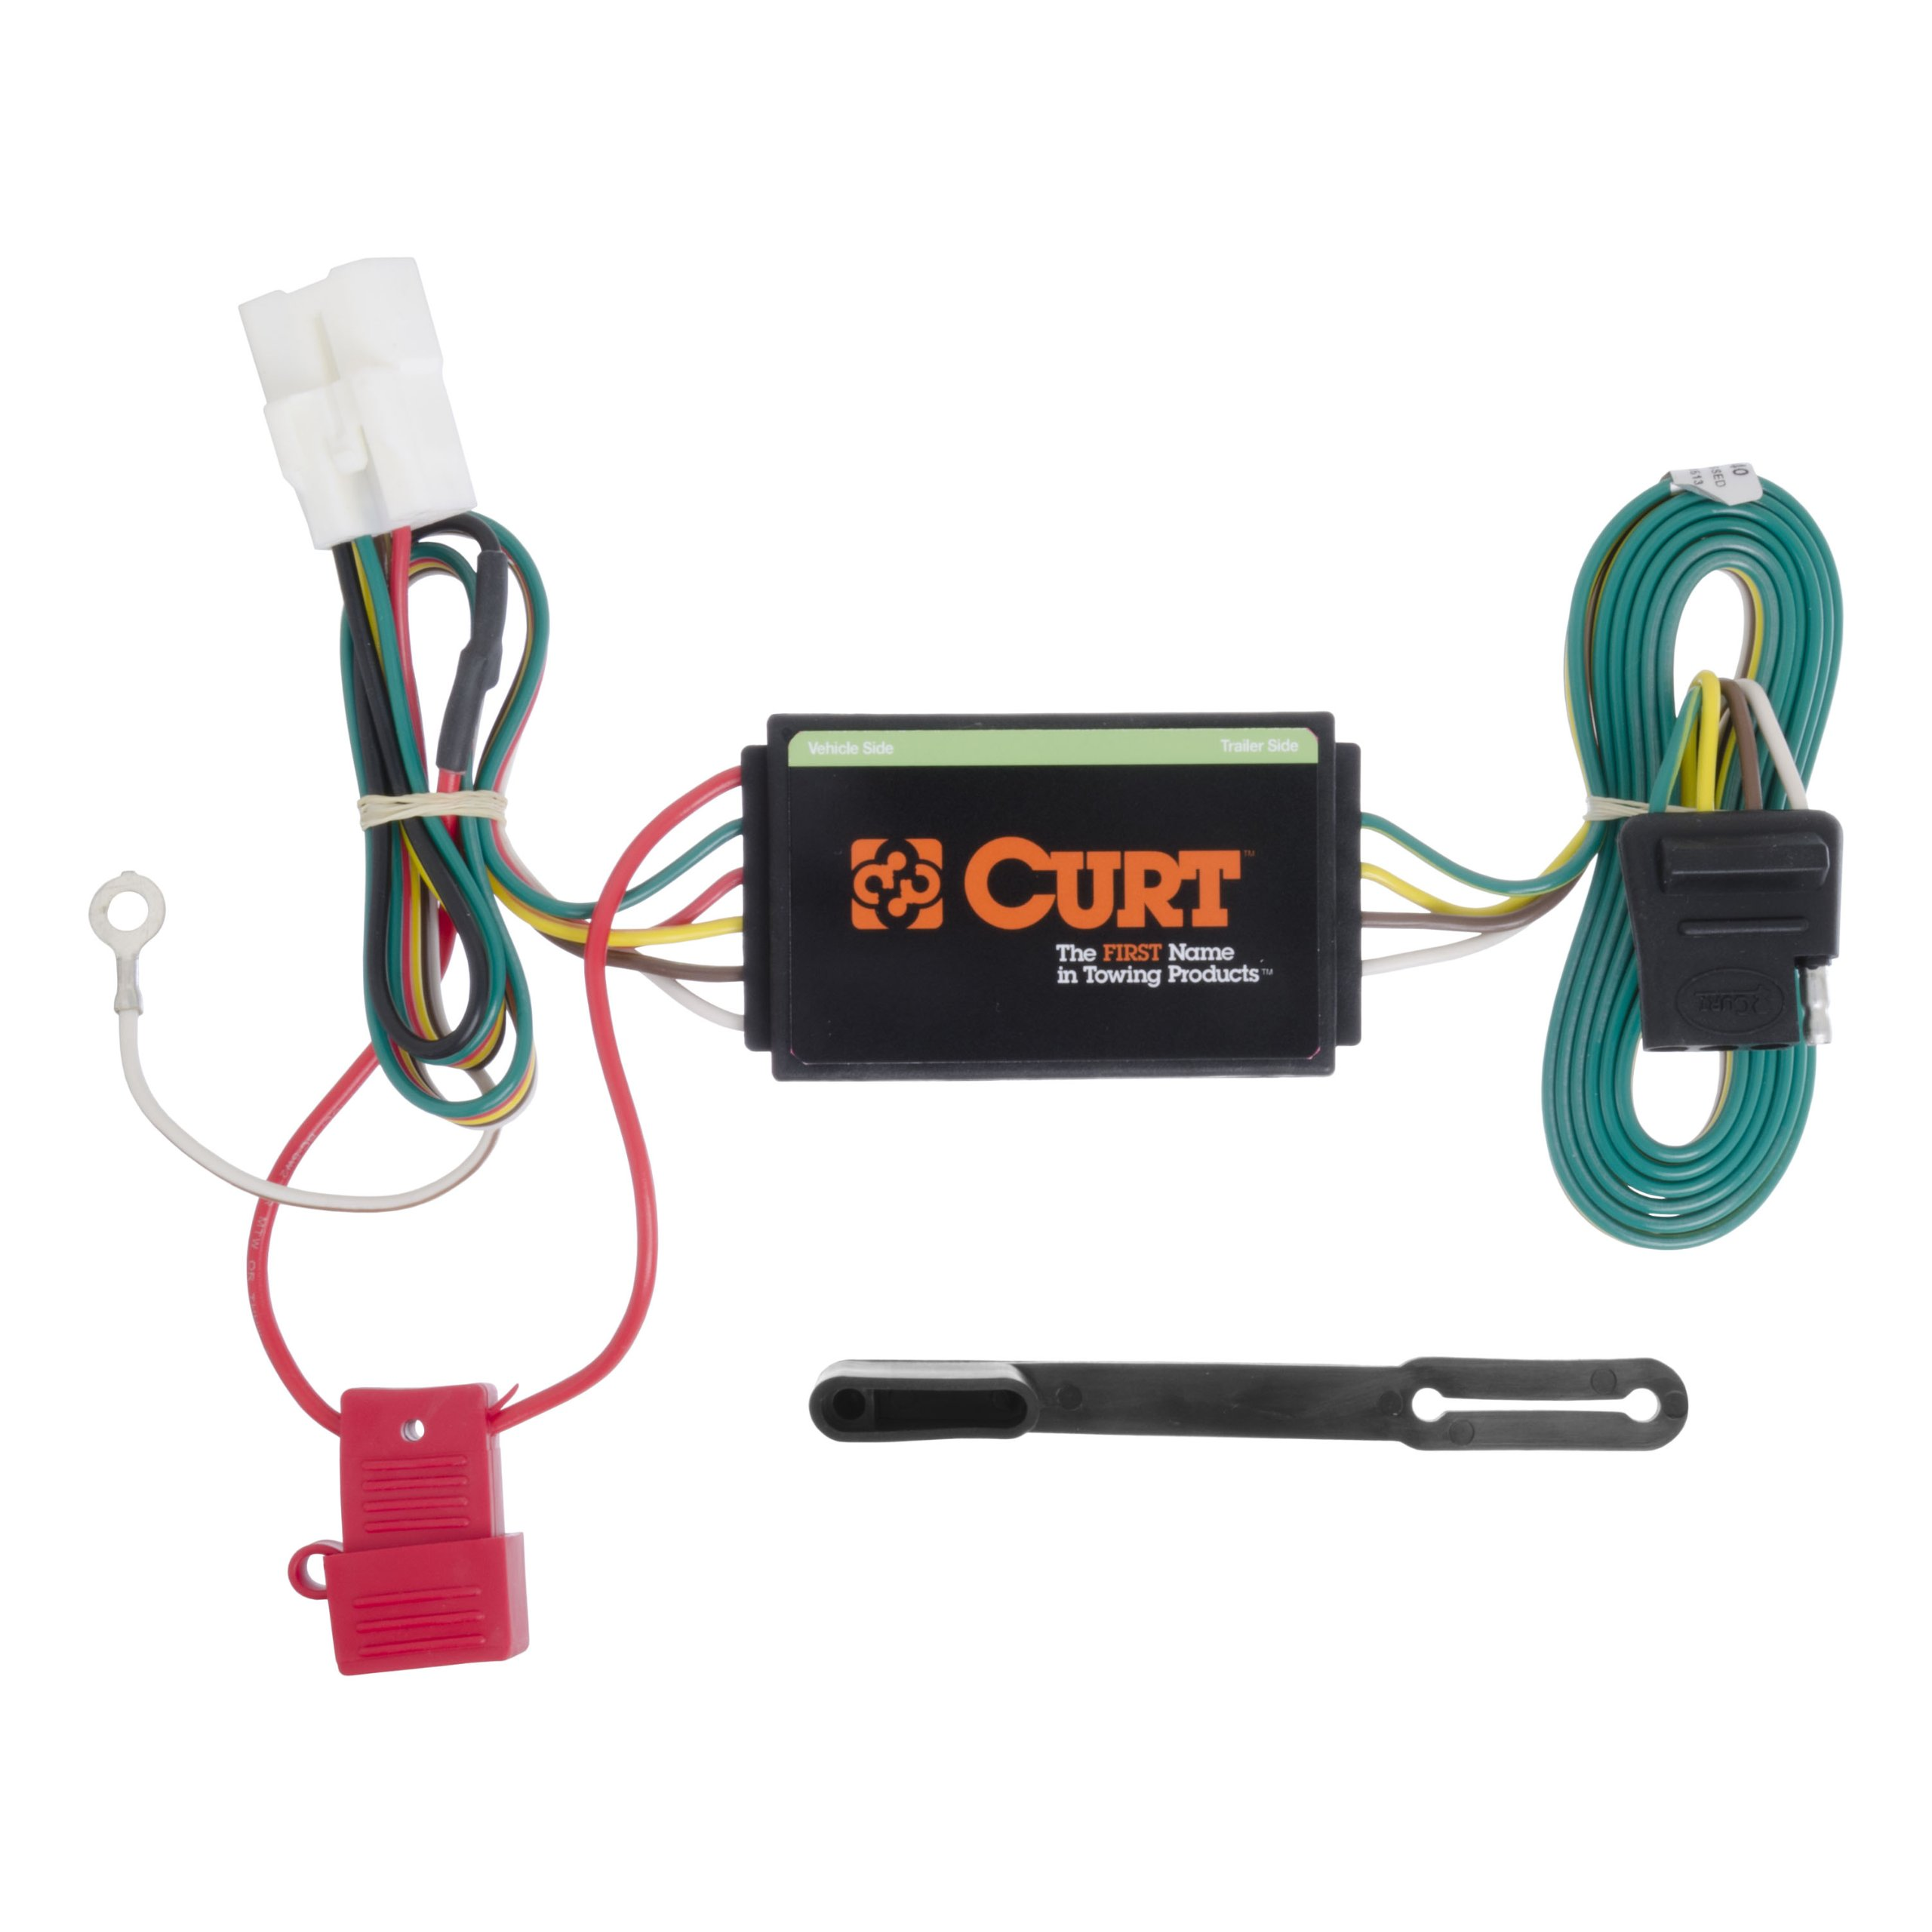 cheap custom wiring find custom wiring deals on line at alibaba com rh guide alibaba com Curt Hitch Wiring Harness Curt Wiring Harness 2010 Corolla